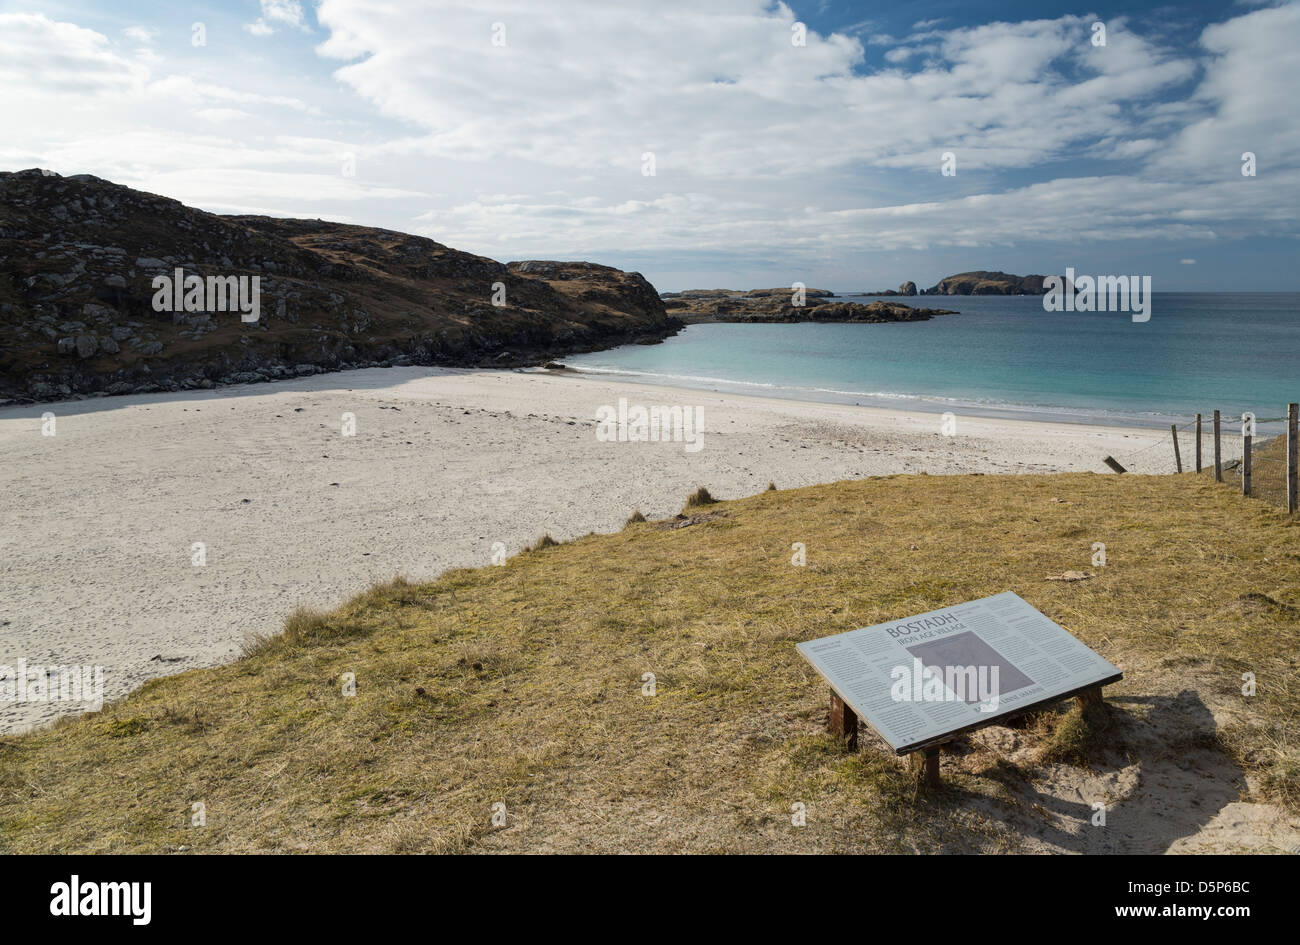 The beach at Bostadh, Great Bernera in the Outer Hebrides of Scotland - Stock Image